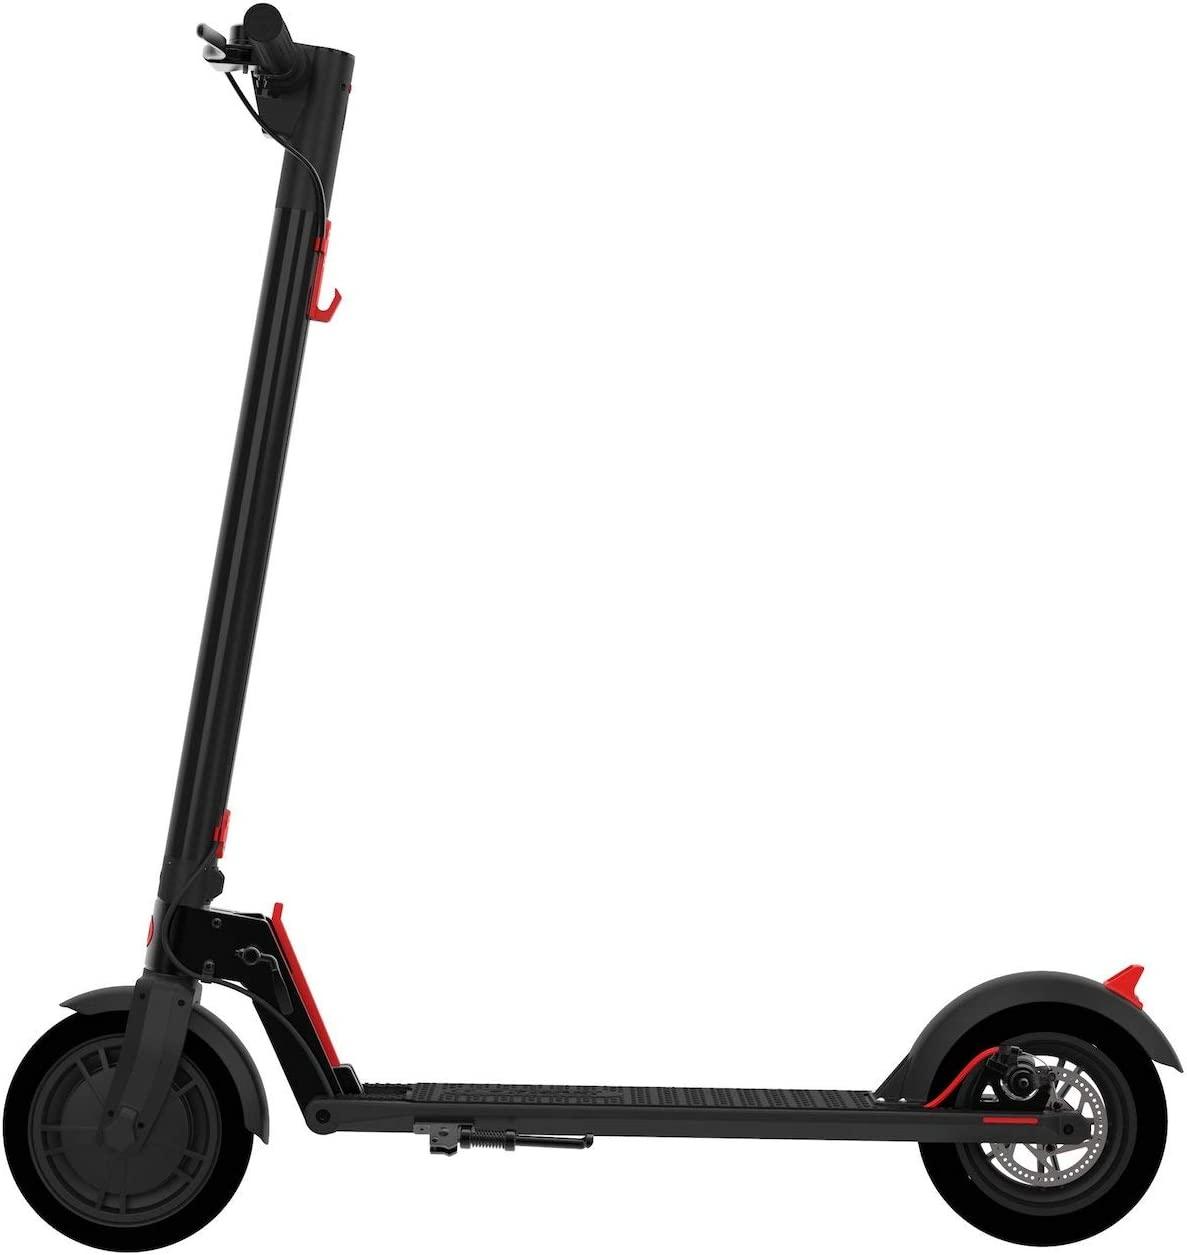 Top 8 Best Electric Scooters (2020 Reviews & Buying Guide) 4